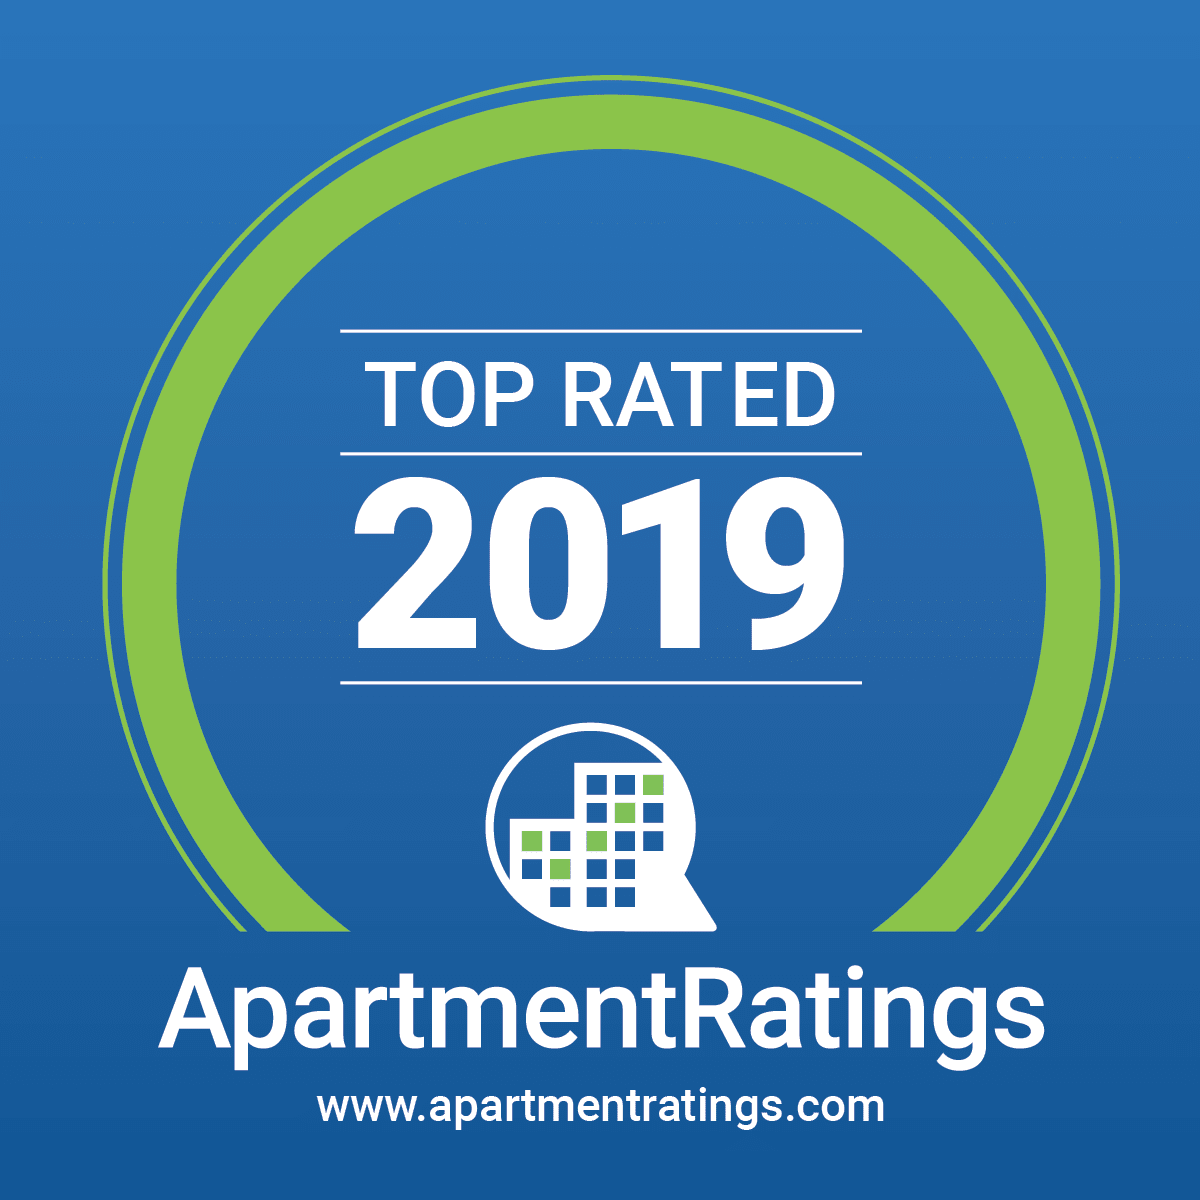 Voted 2019 Top Rated Apartments by ApartmentRatings.com